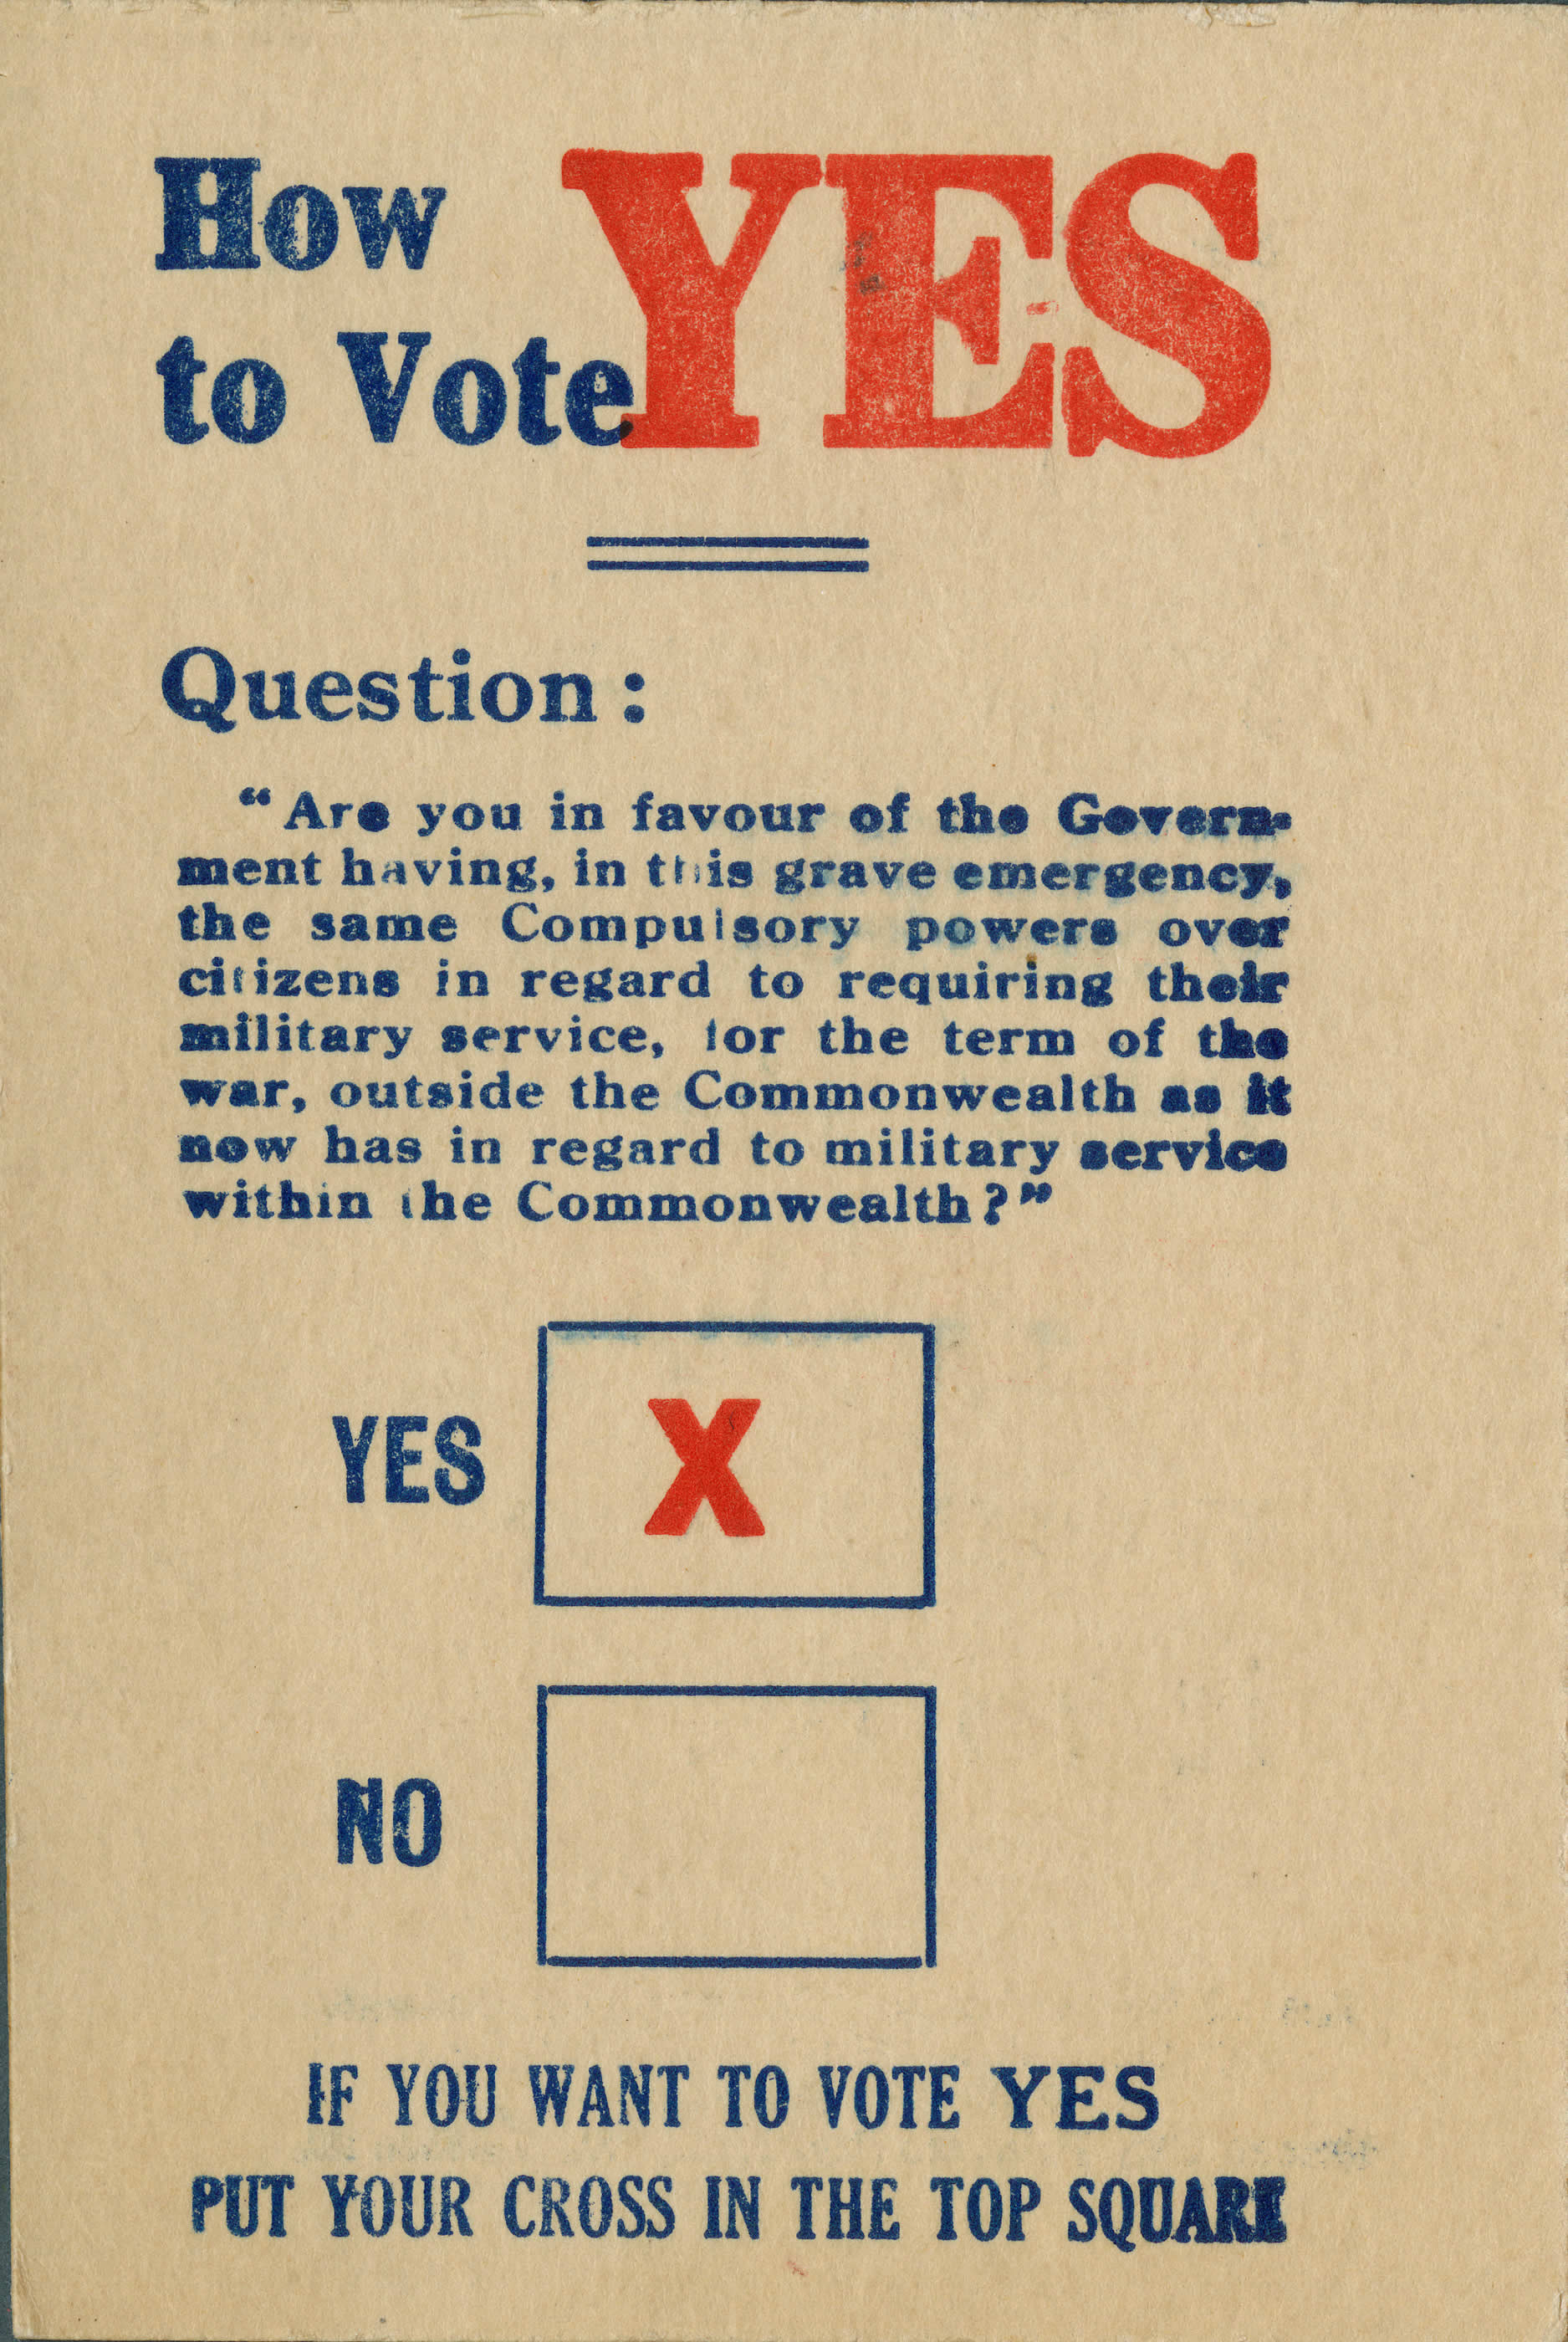 <i>How to Vote YES</i>